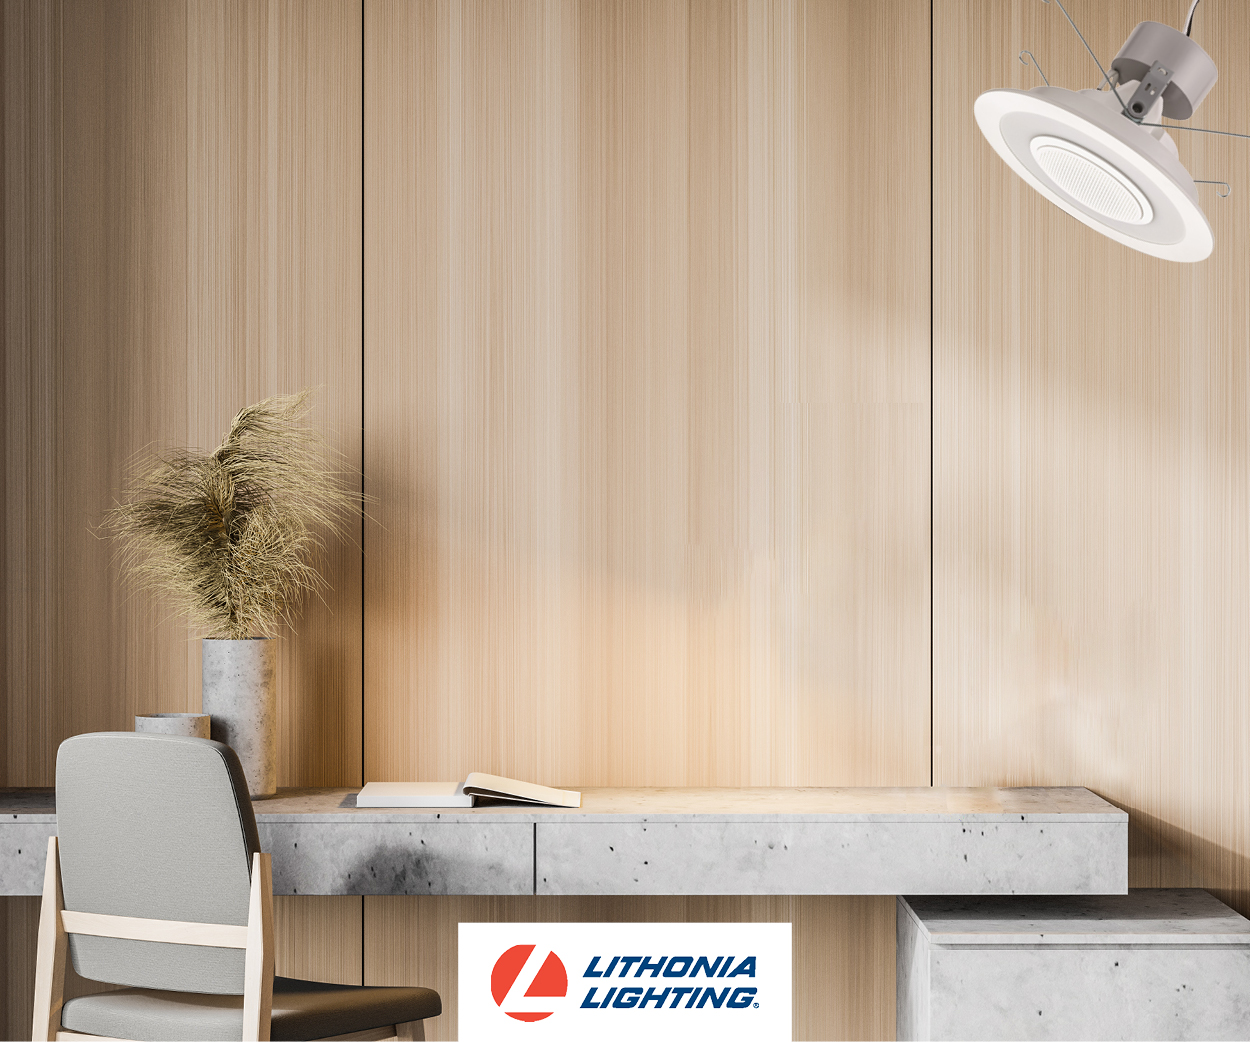 Lithonia 6SL Wireless Speaker Downlights